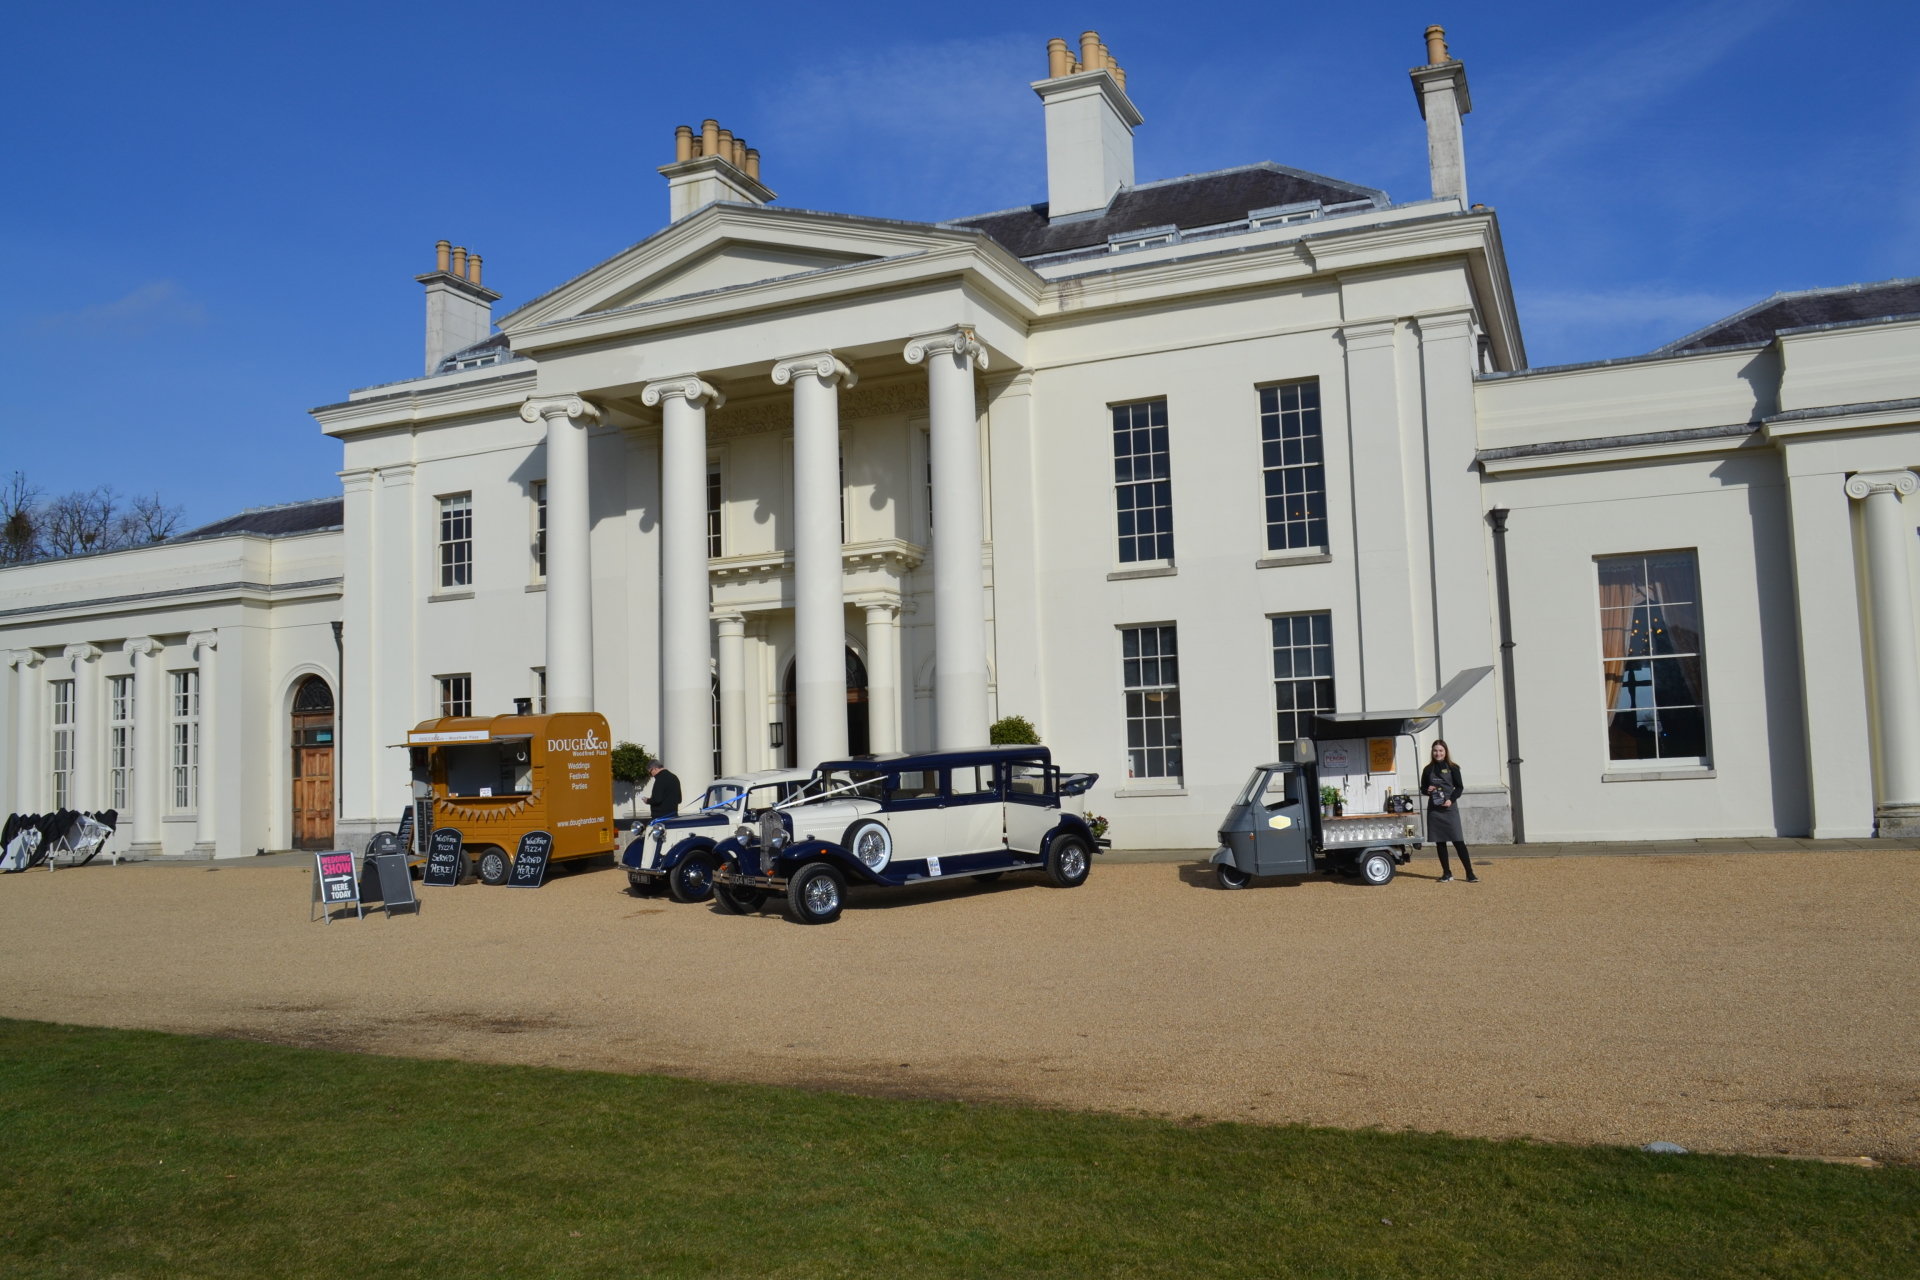 Piccolo Furgone at Hylands House